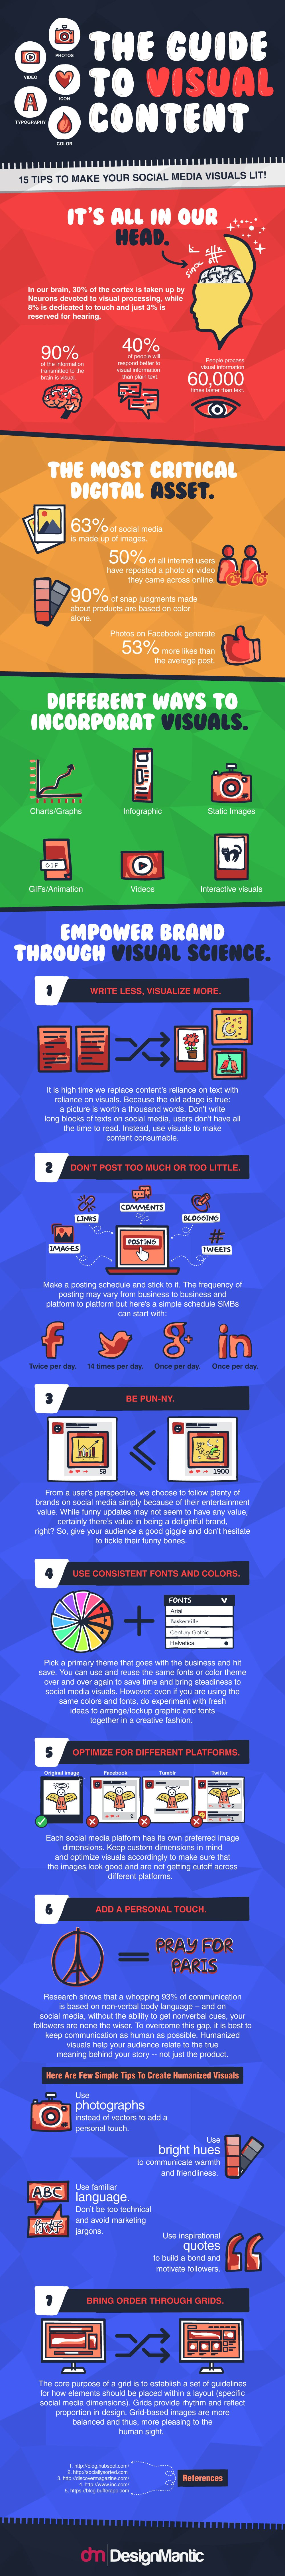 15 top tips to improve your social media visual content